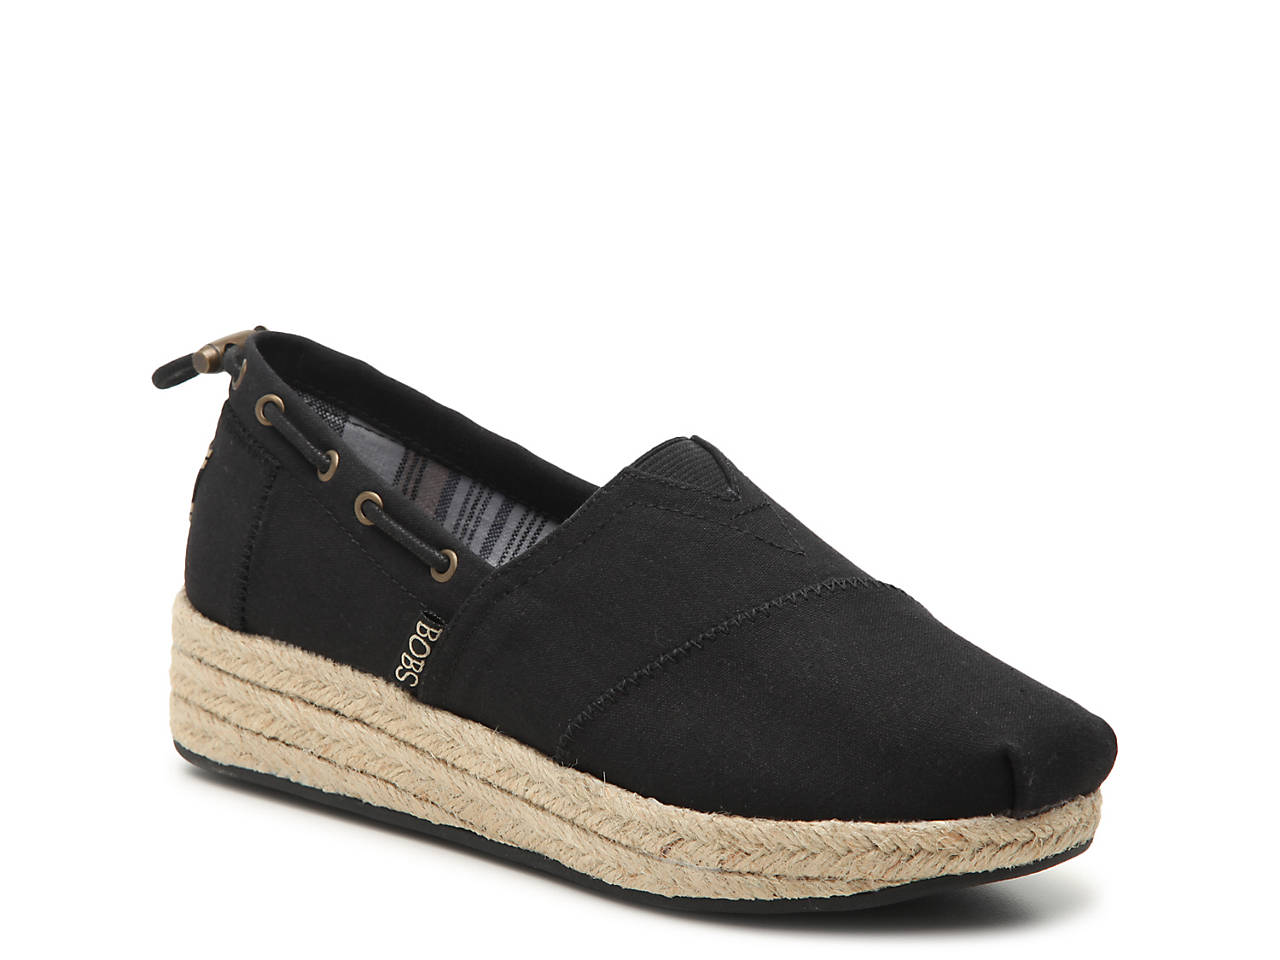 Highlights - Set Sail BOBS from SKECHERS 5vNbs